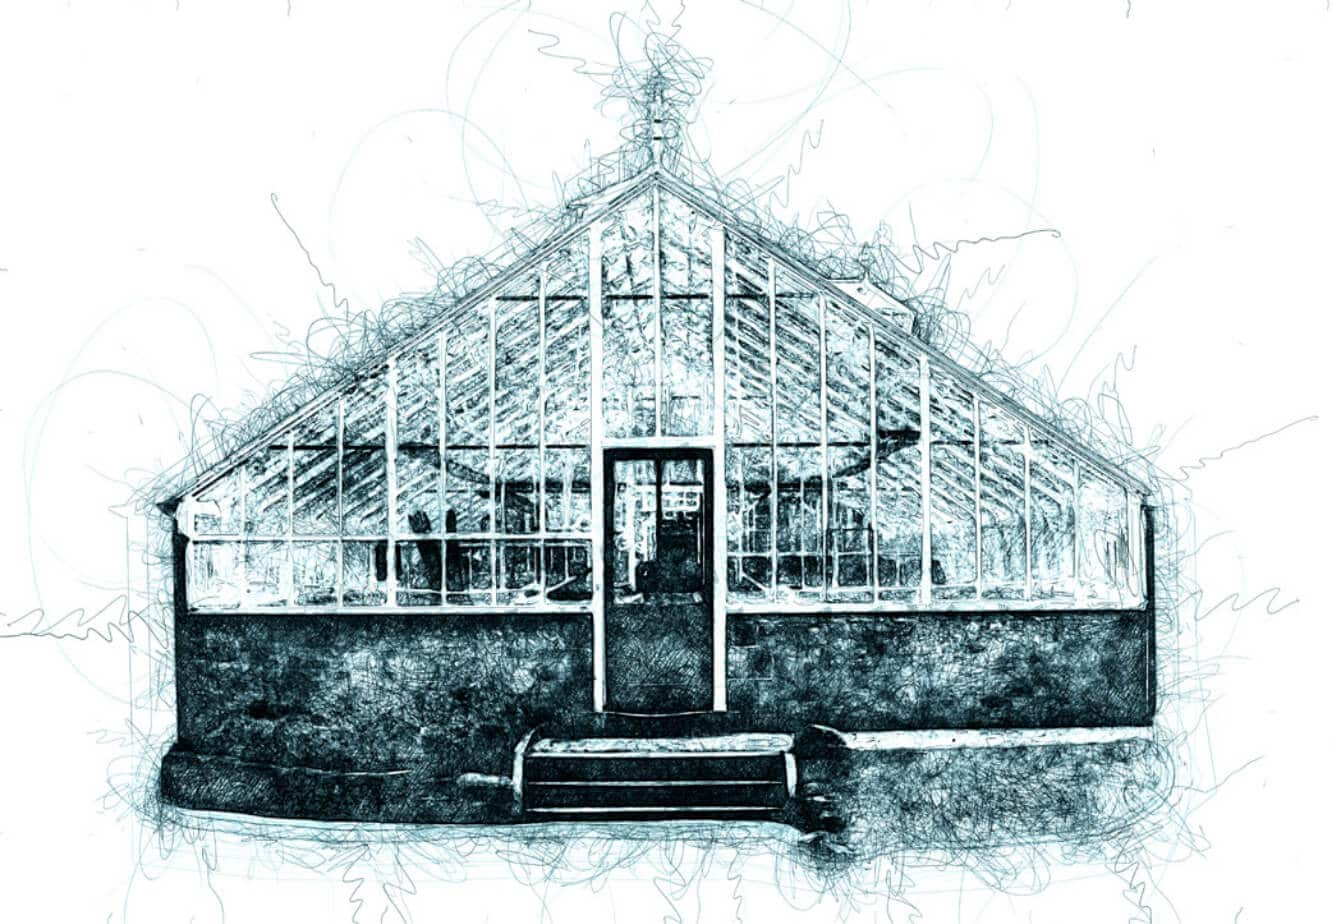 The refurbished glasshouses and conservatories - an artist impression